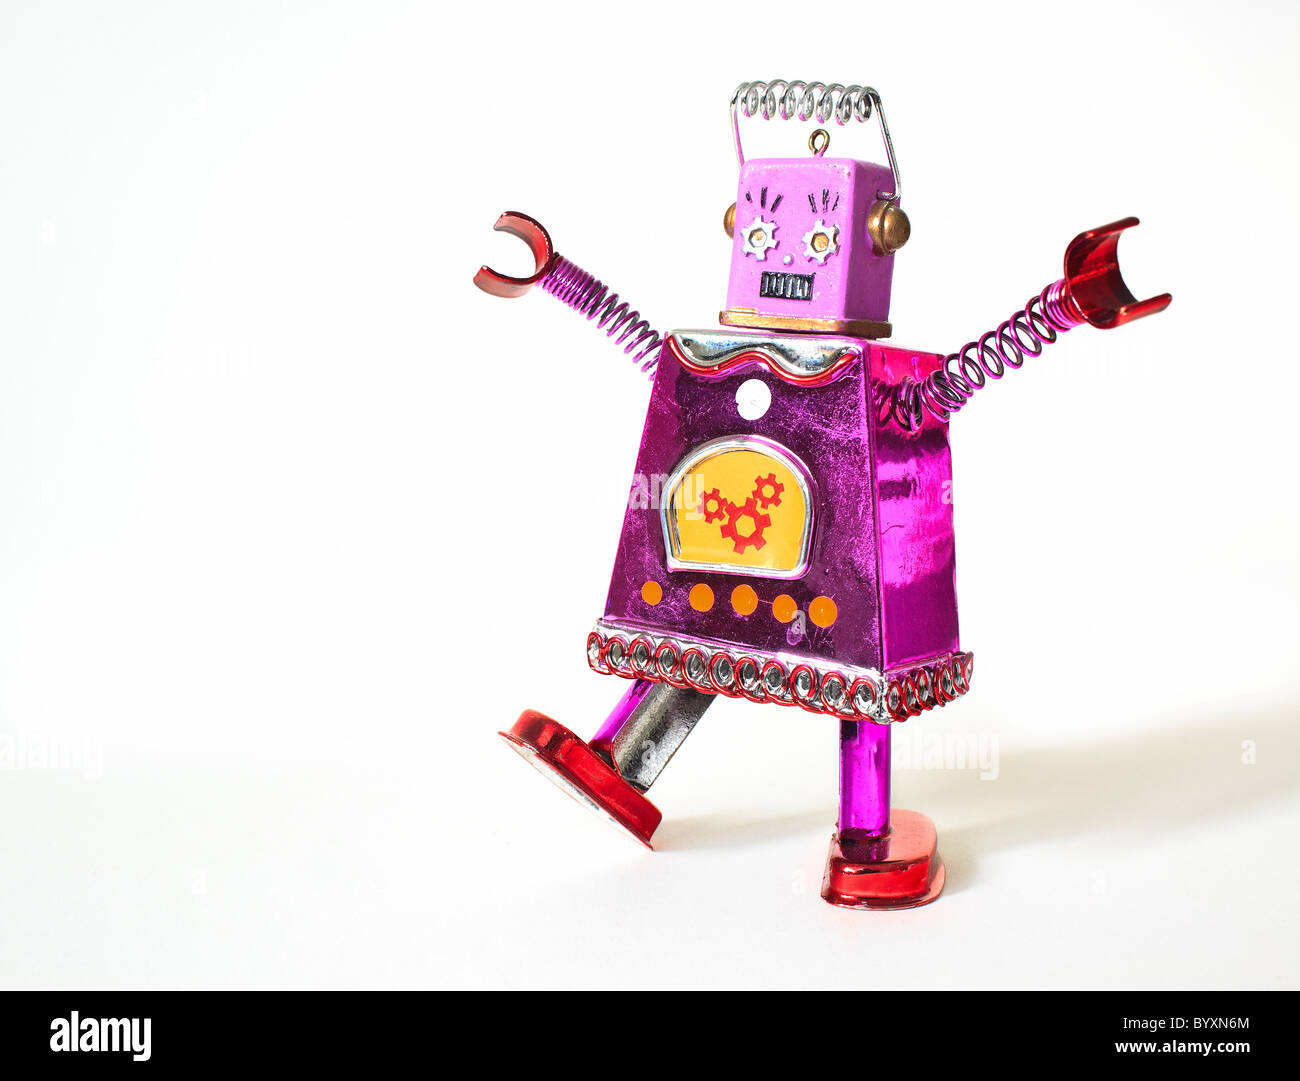 Tin toy robot dancing, with arms raised, (conceptual image), female likeness. - Stock Image